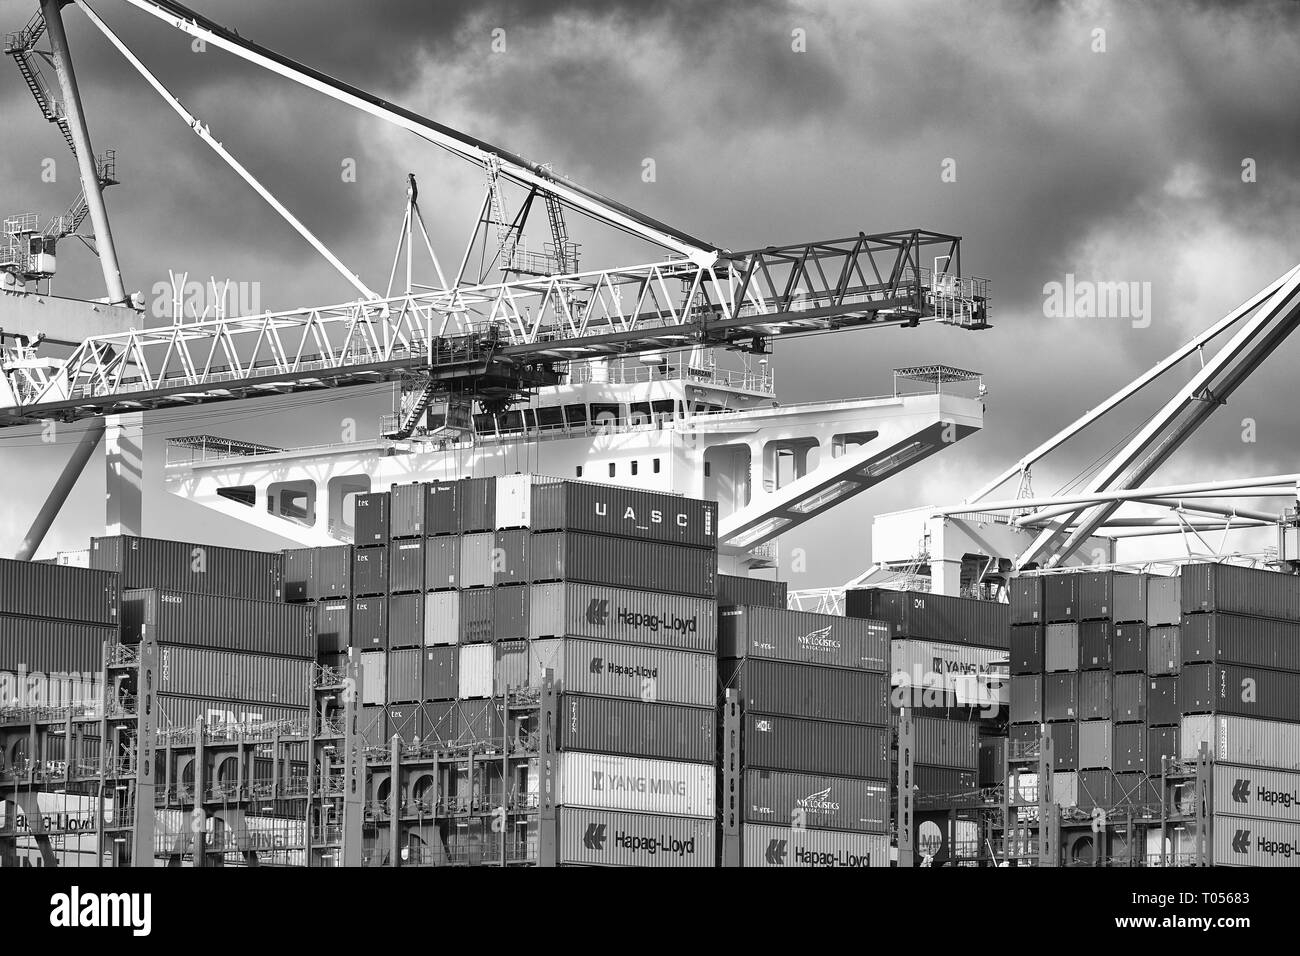 Black & White Image Of The Ultra-Large, 400 Metre, UASC Container Ship, BARZAN, Loading And Unloading In The Southampton Container Terminal, UK. - Stock Image